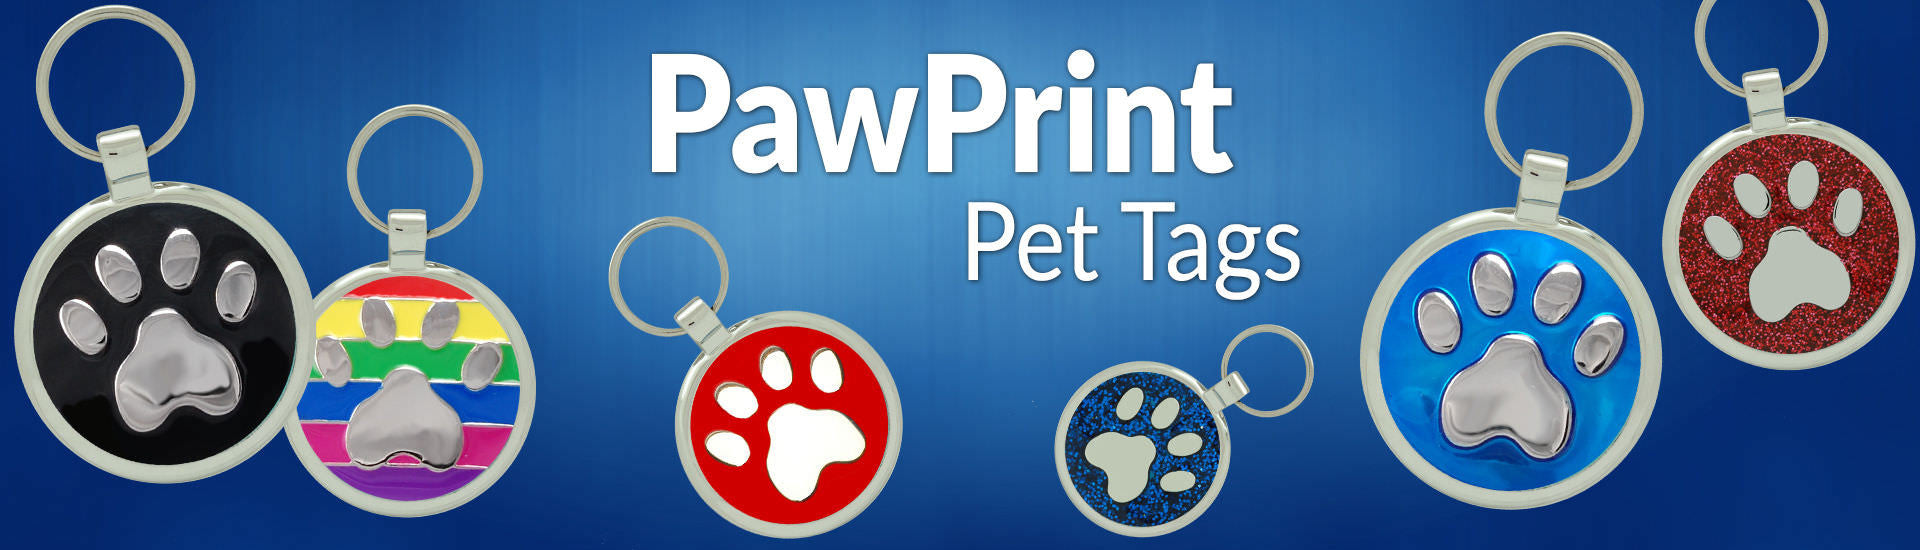 pawprintpettags-pet-tag-banner